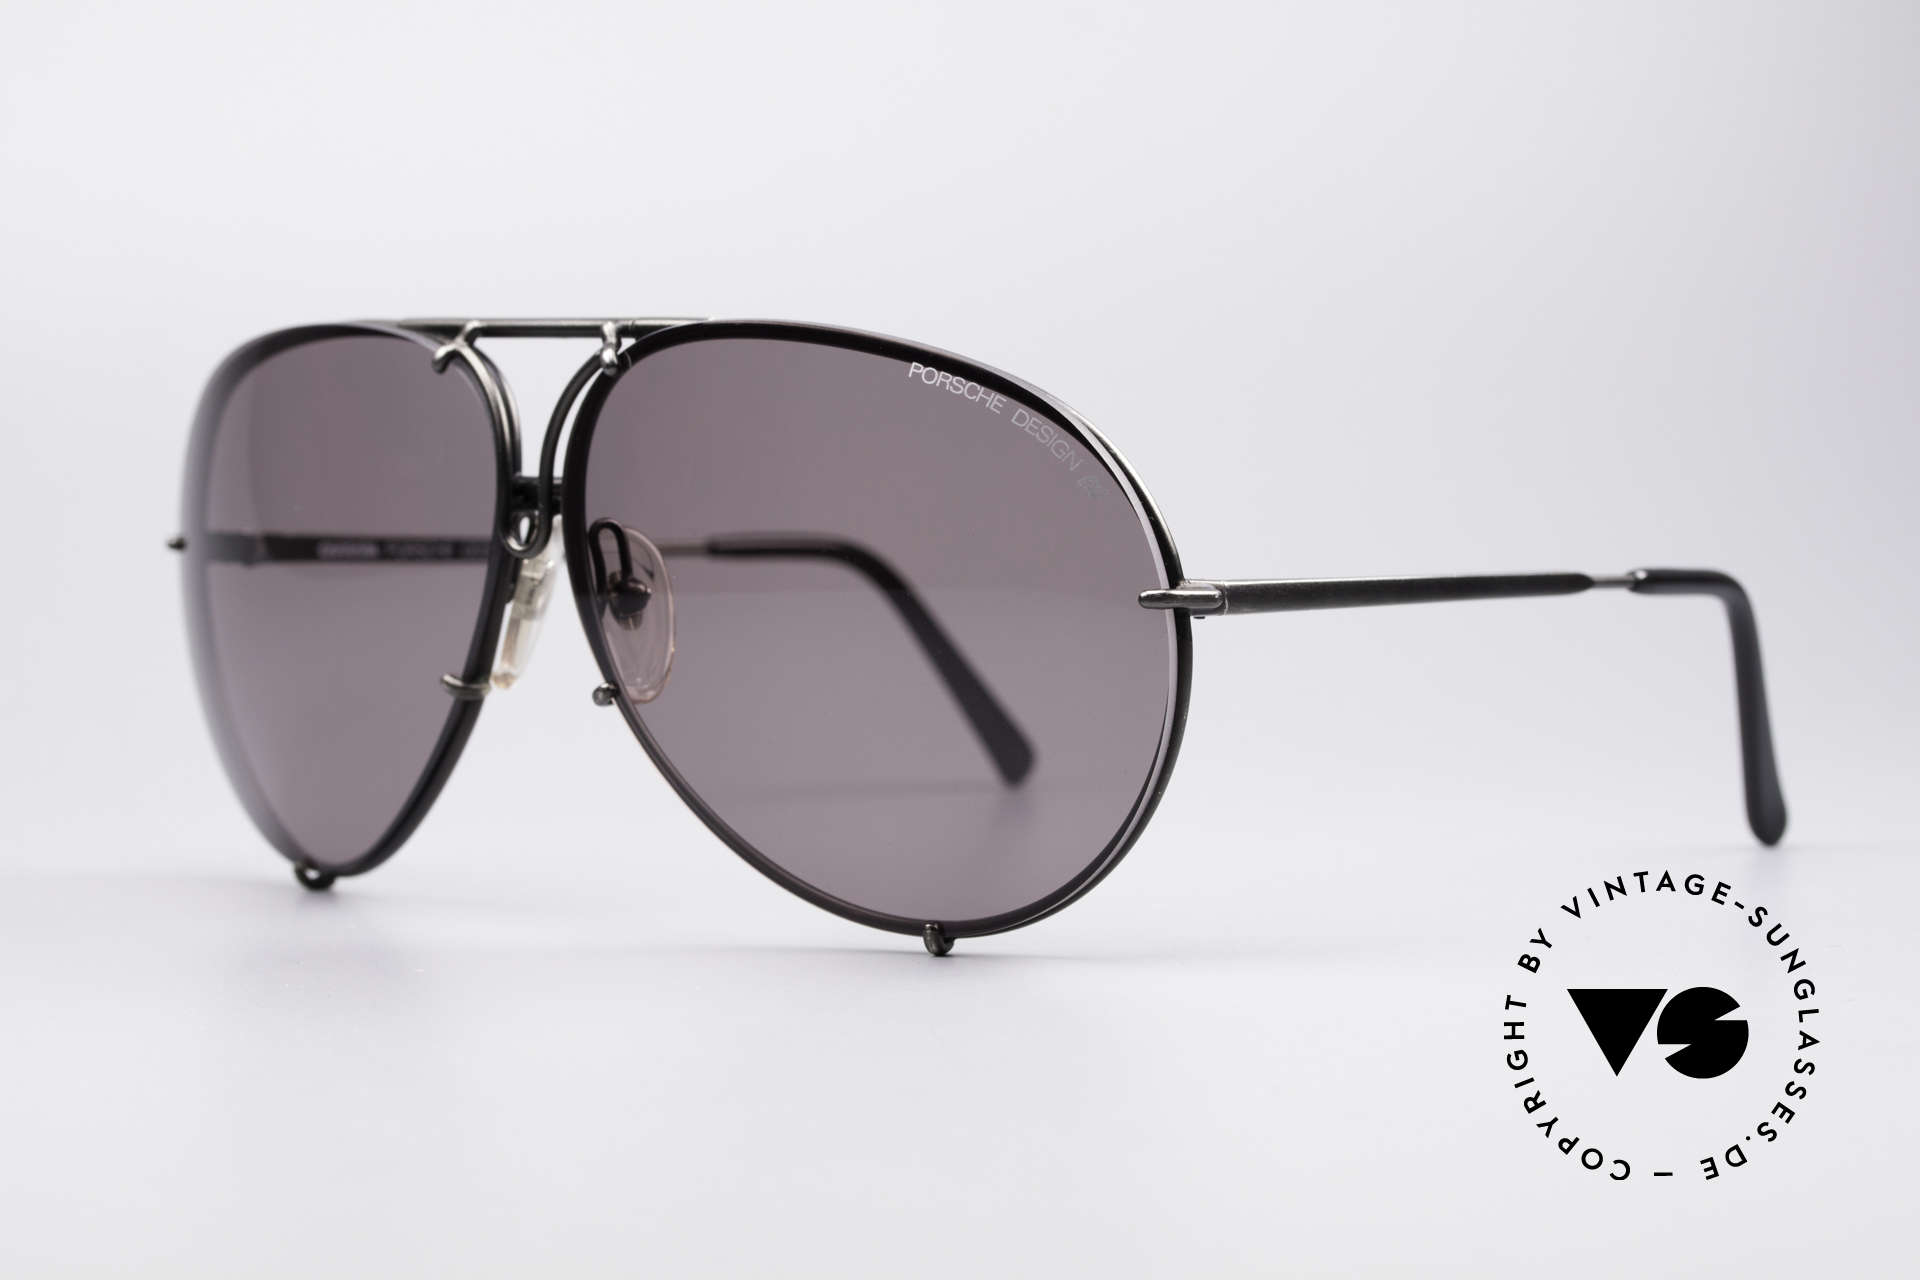 Porsche 5621 Rare 80's XL Aviator Shades, frame and gray sun lenses are in a flawless condition, Made for Men